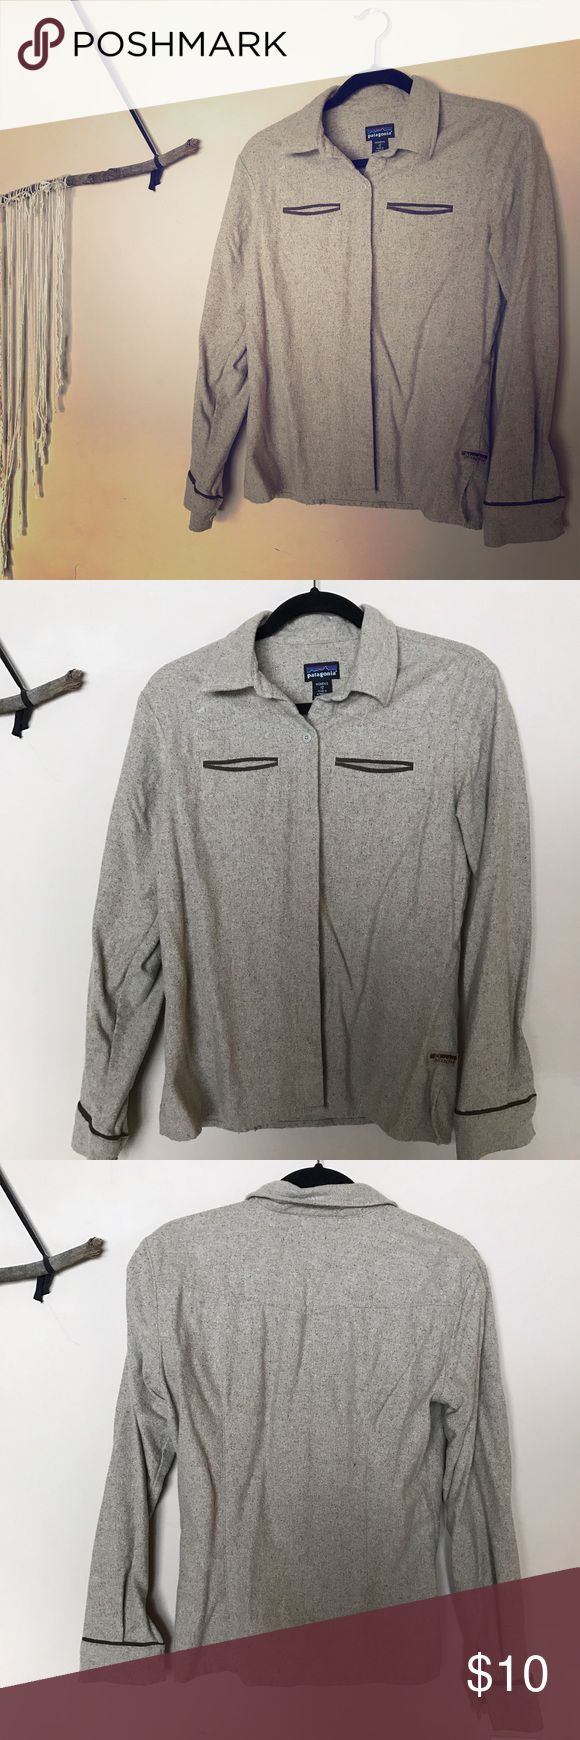 Patagonia wool button up outdoors shirt Perfect for hiking in cold weather with a base layer underneath! Classy yet outdoorsy.                              • • • 30% off of bundles of 3+, free gifts (vintage, new, or handcrafted) with every purchase, and negotiable prices on every sale. • • • Patagonia Tops Button Down Shirts